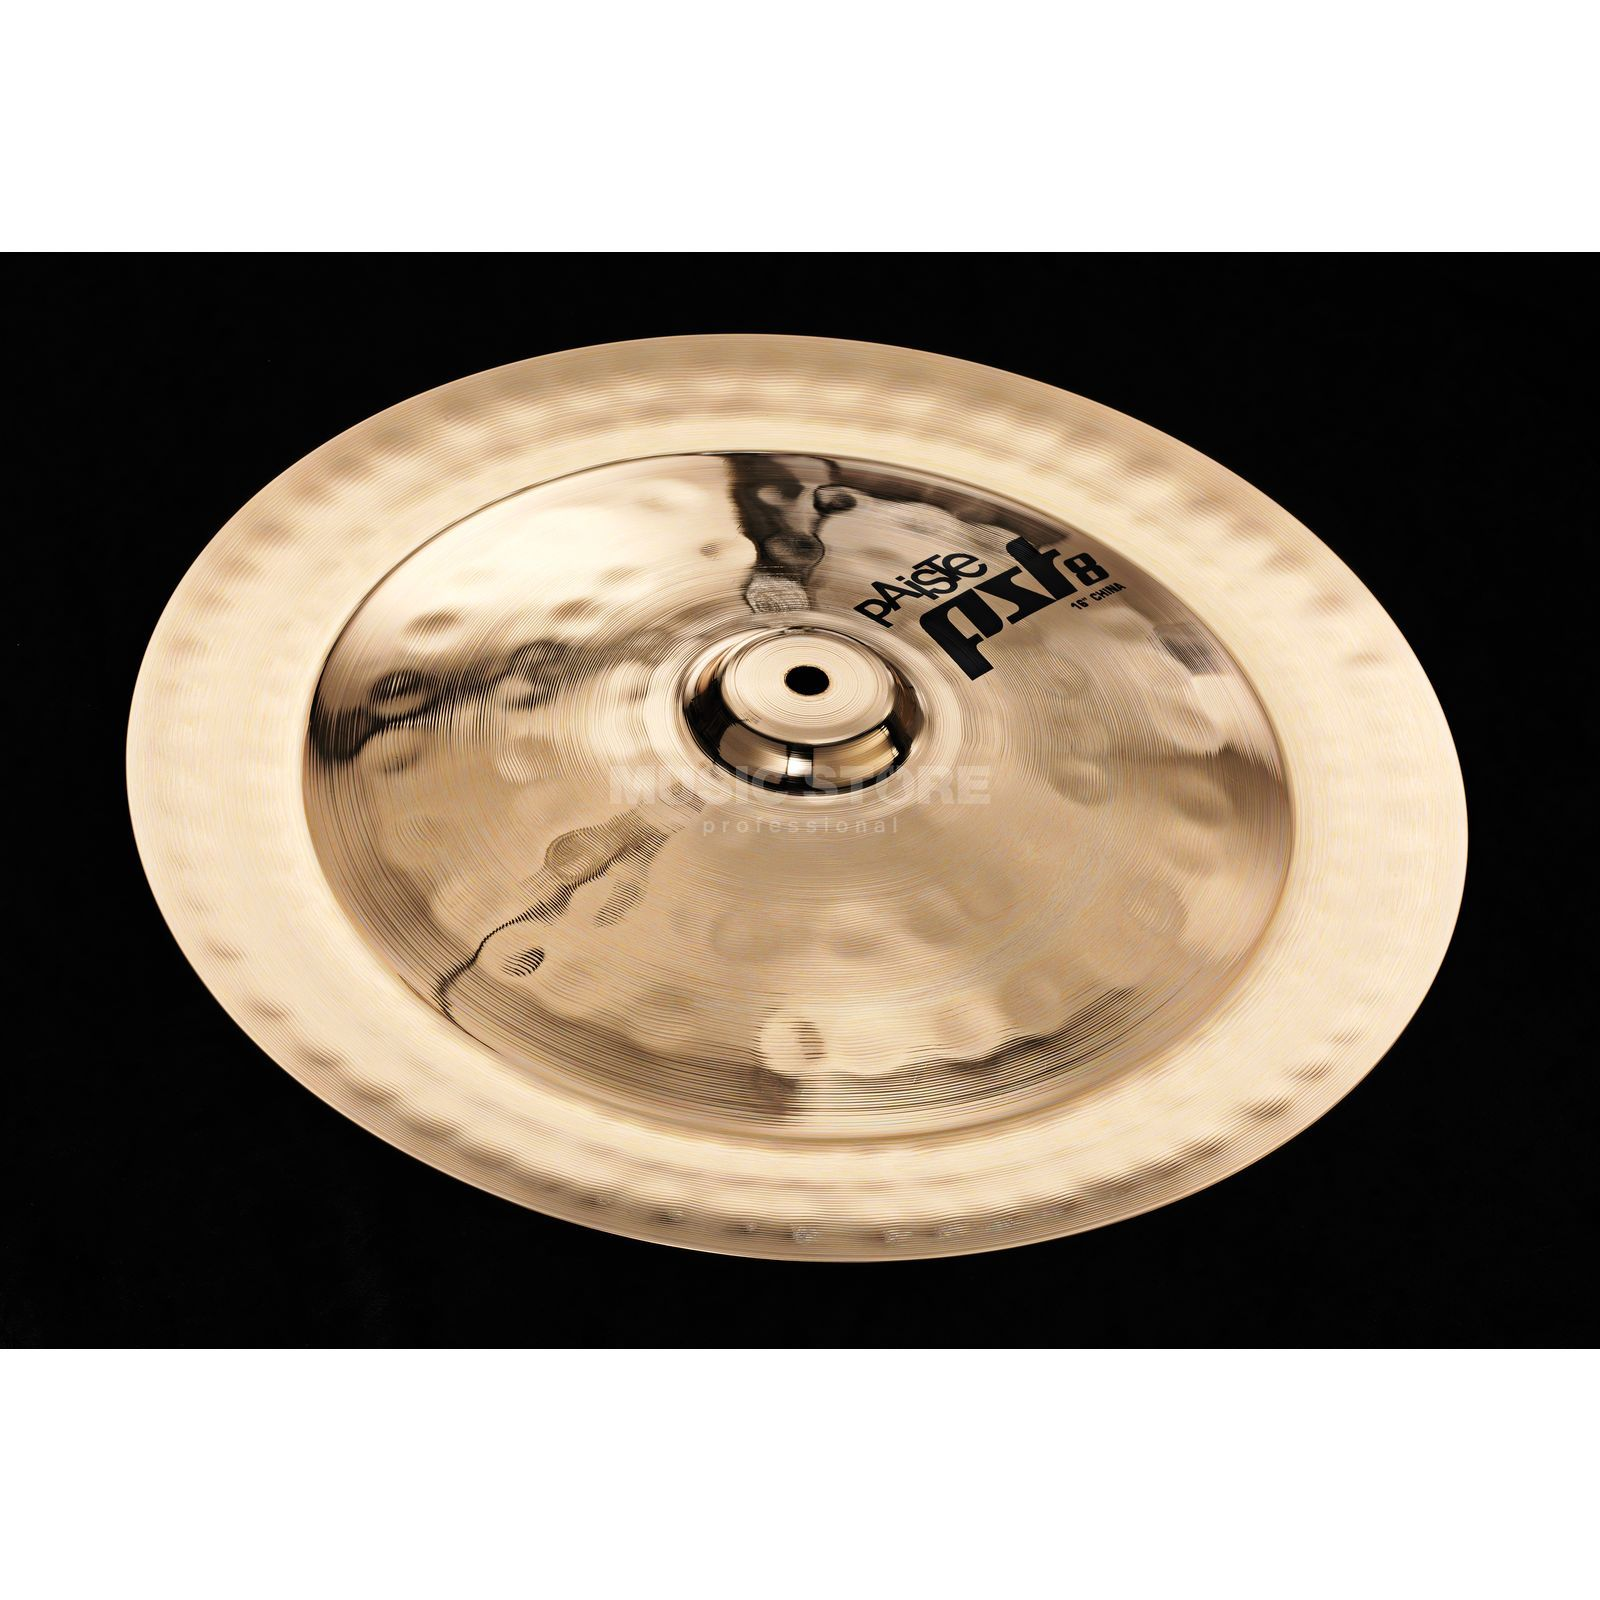 "Paiste PST8 China 16"", Reflector Finish Produktbild"